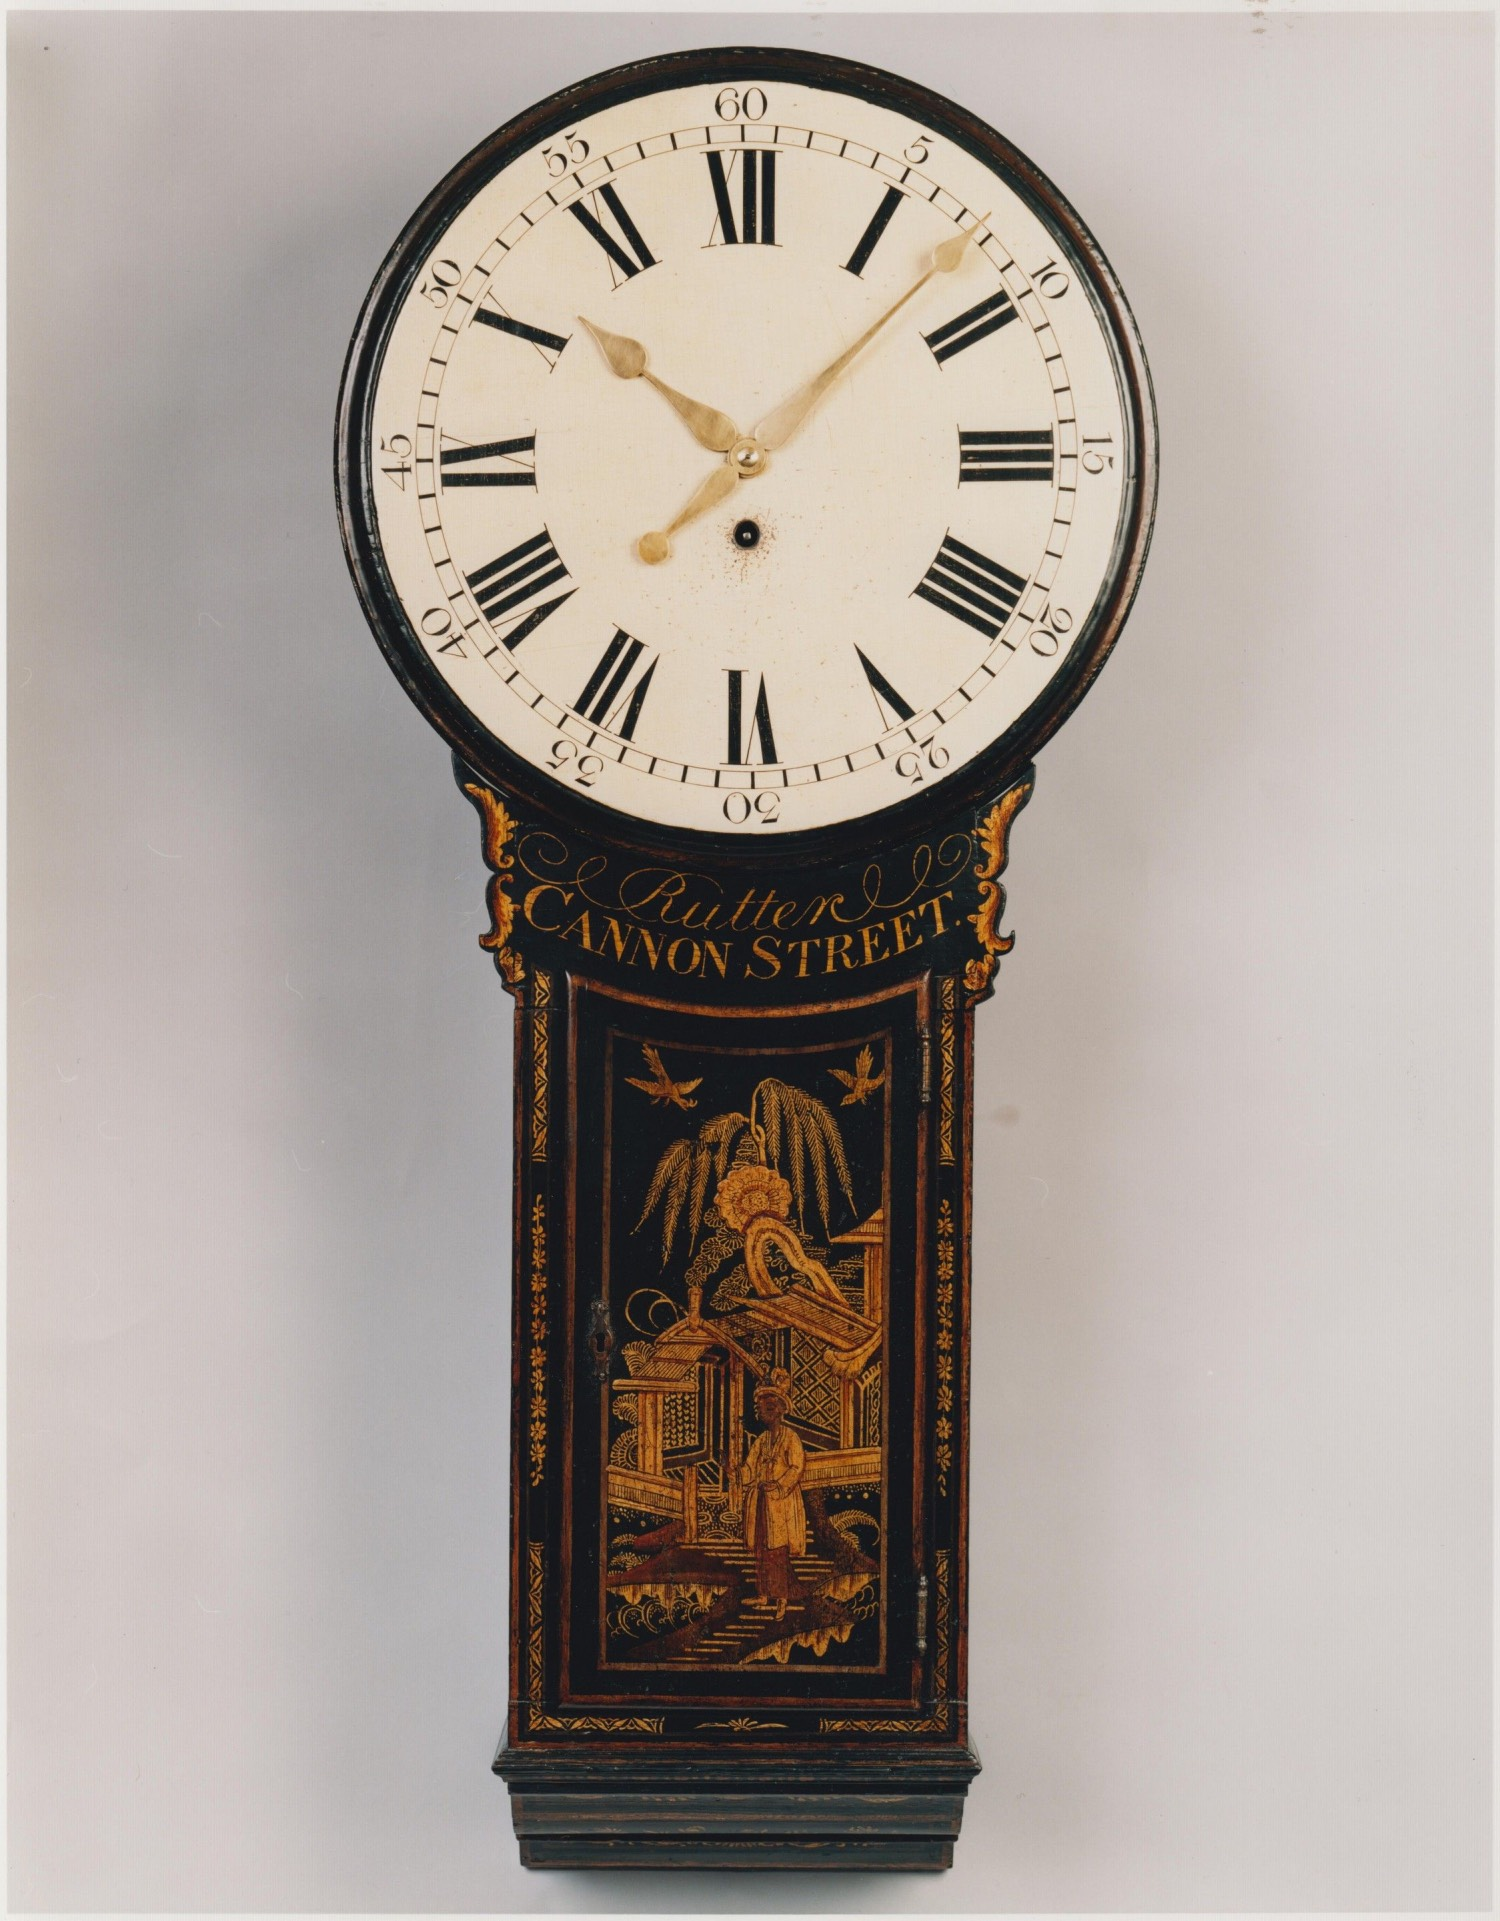 RUTTER, CANNON STREET, A FINE AND UNUSUALLY SMALL LACQUERED TAVERN TIMEPIECE